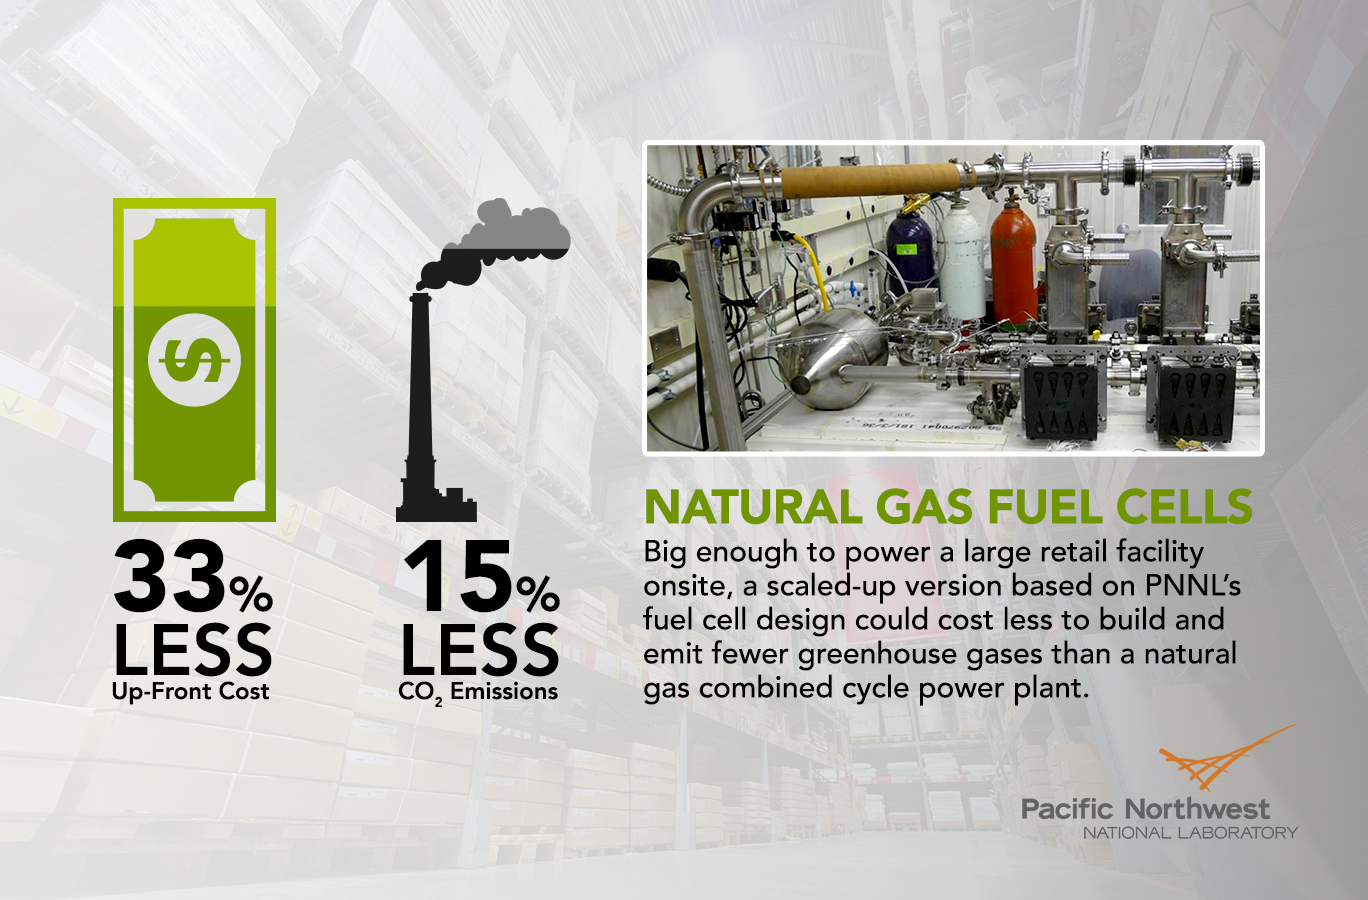 Big box stores could ditch the grid, use natural gas fuel cells instead